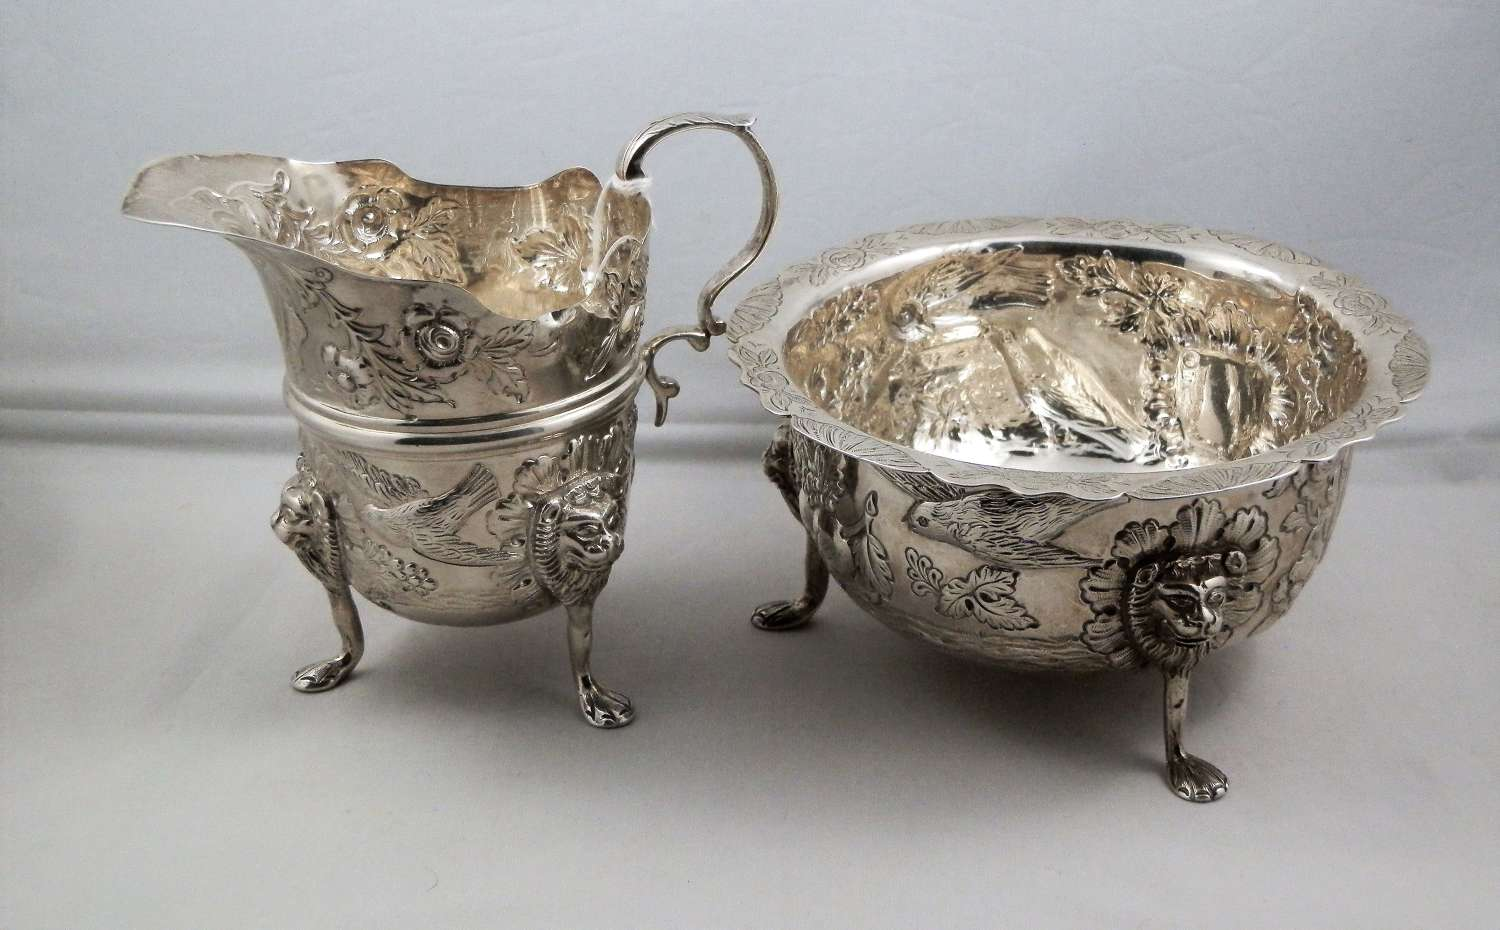 Victorian Irish silver bowl and jug, Dublin 1901